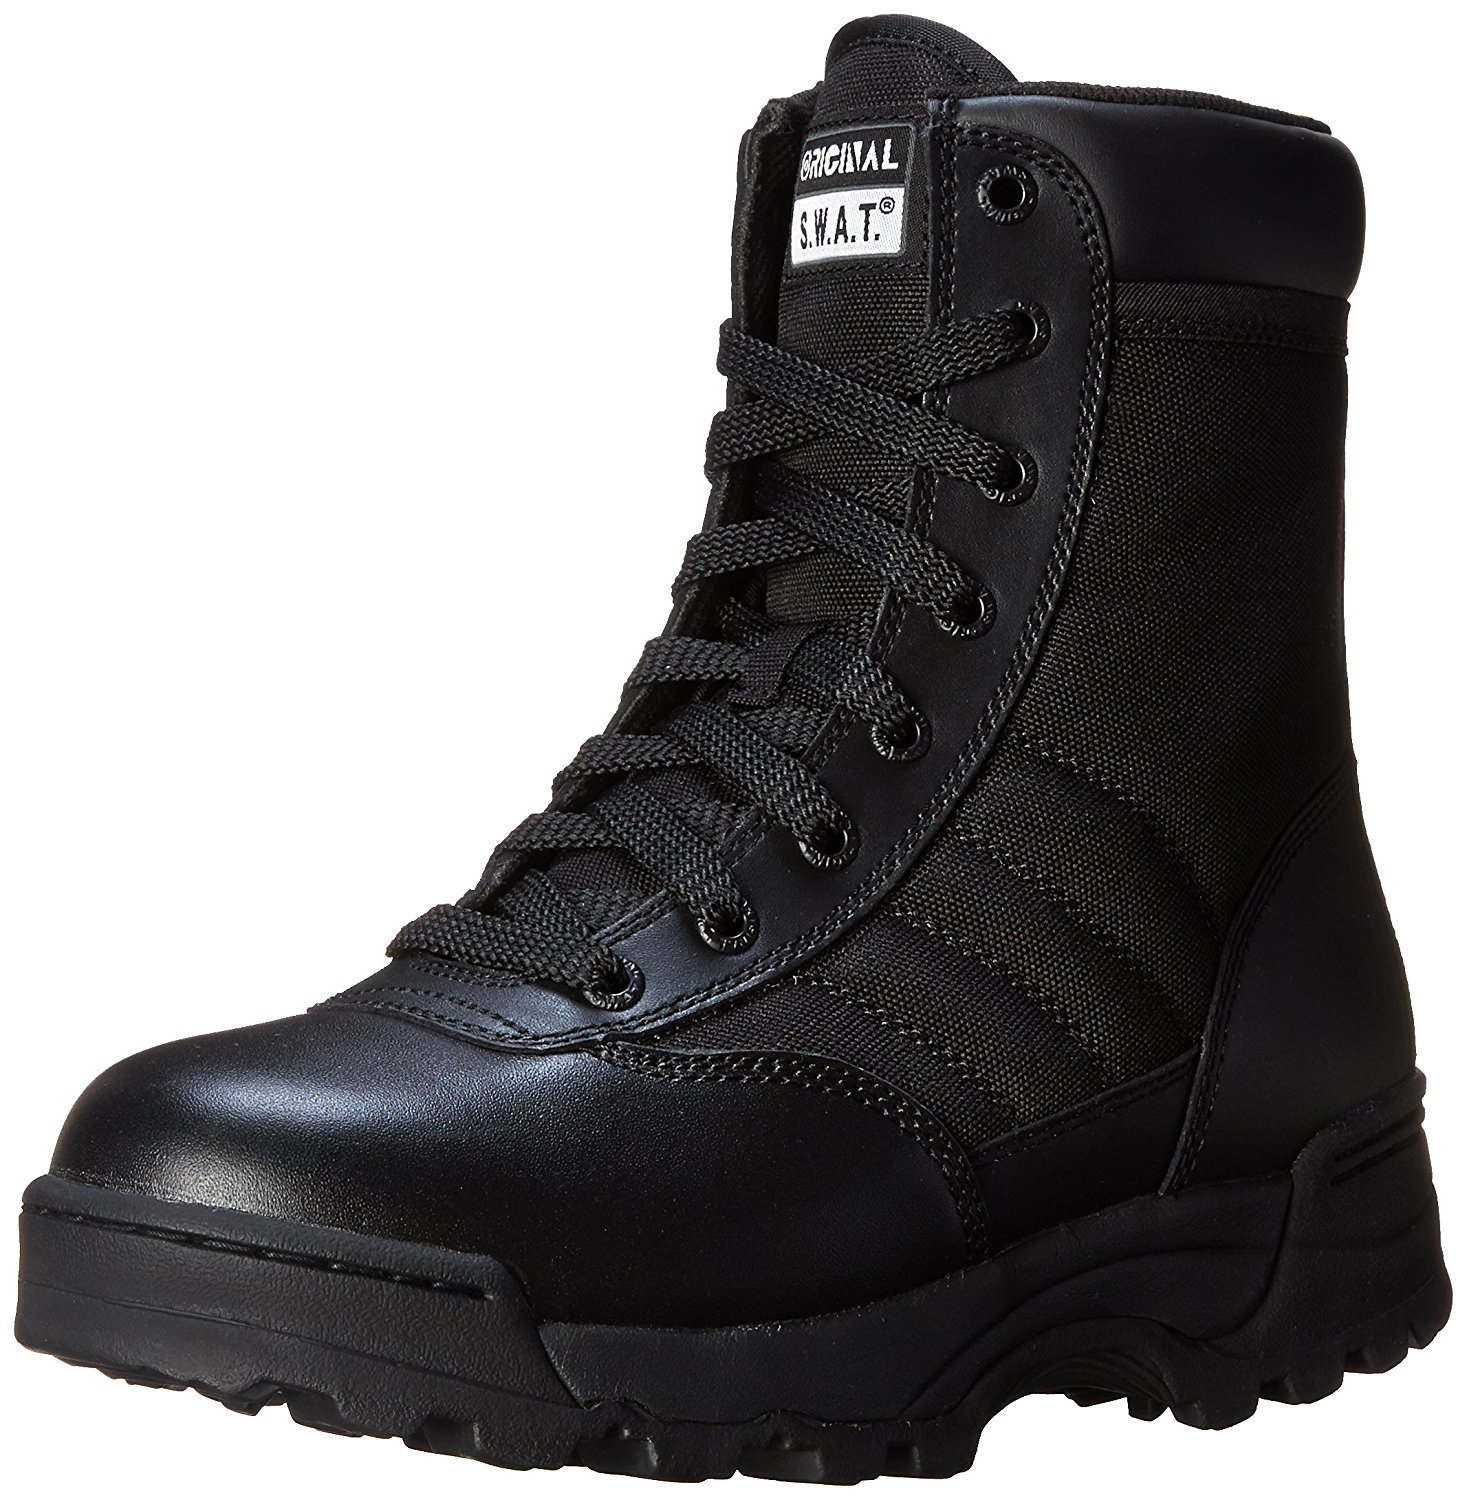 Women's Classic 9 Inch Side Zip Tactical Boot, Black, 9 B US by Original S.W.A.T.